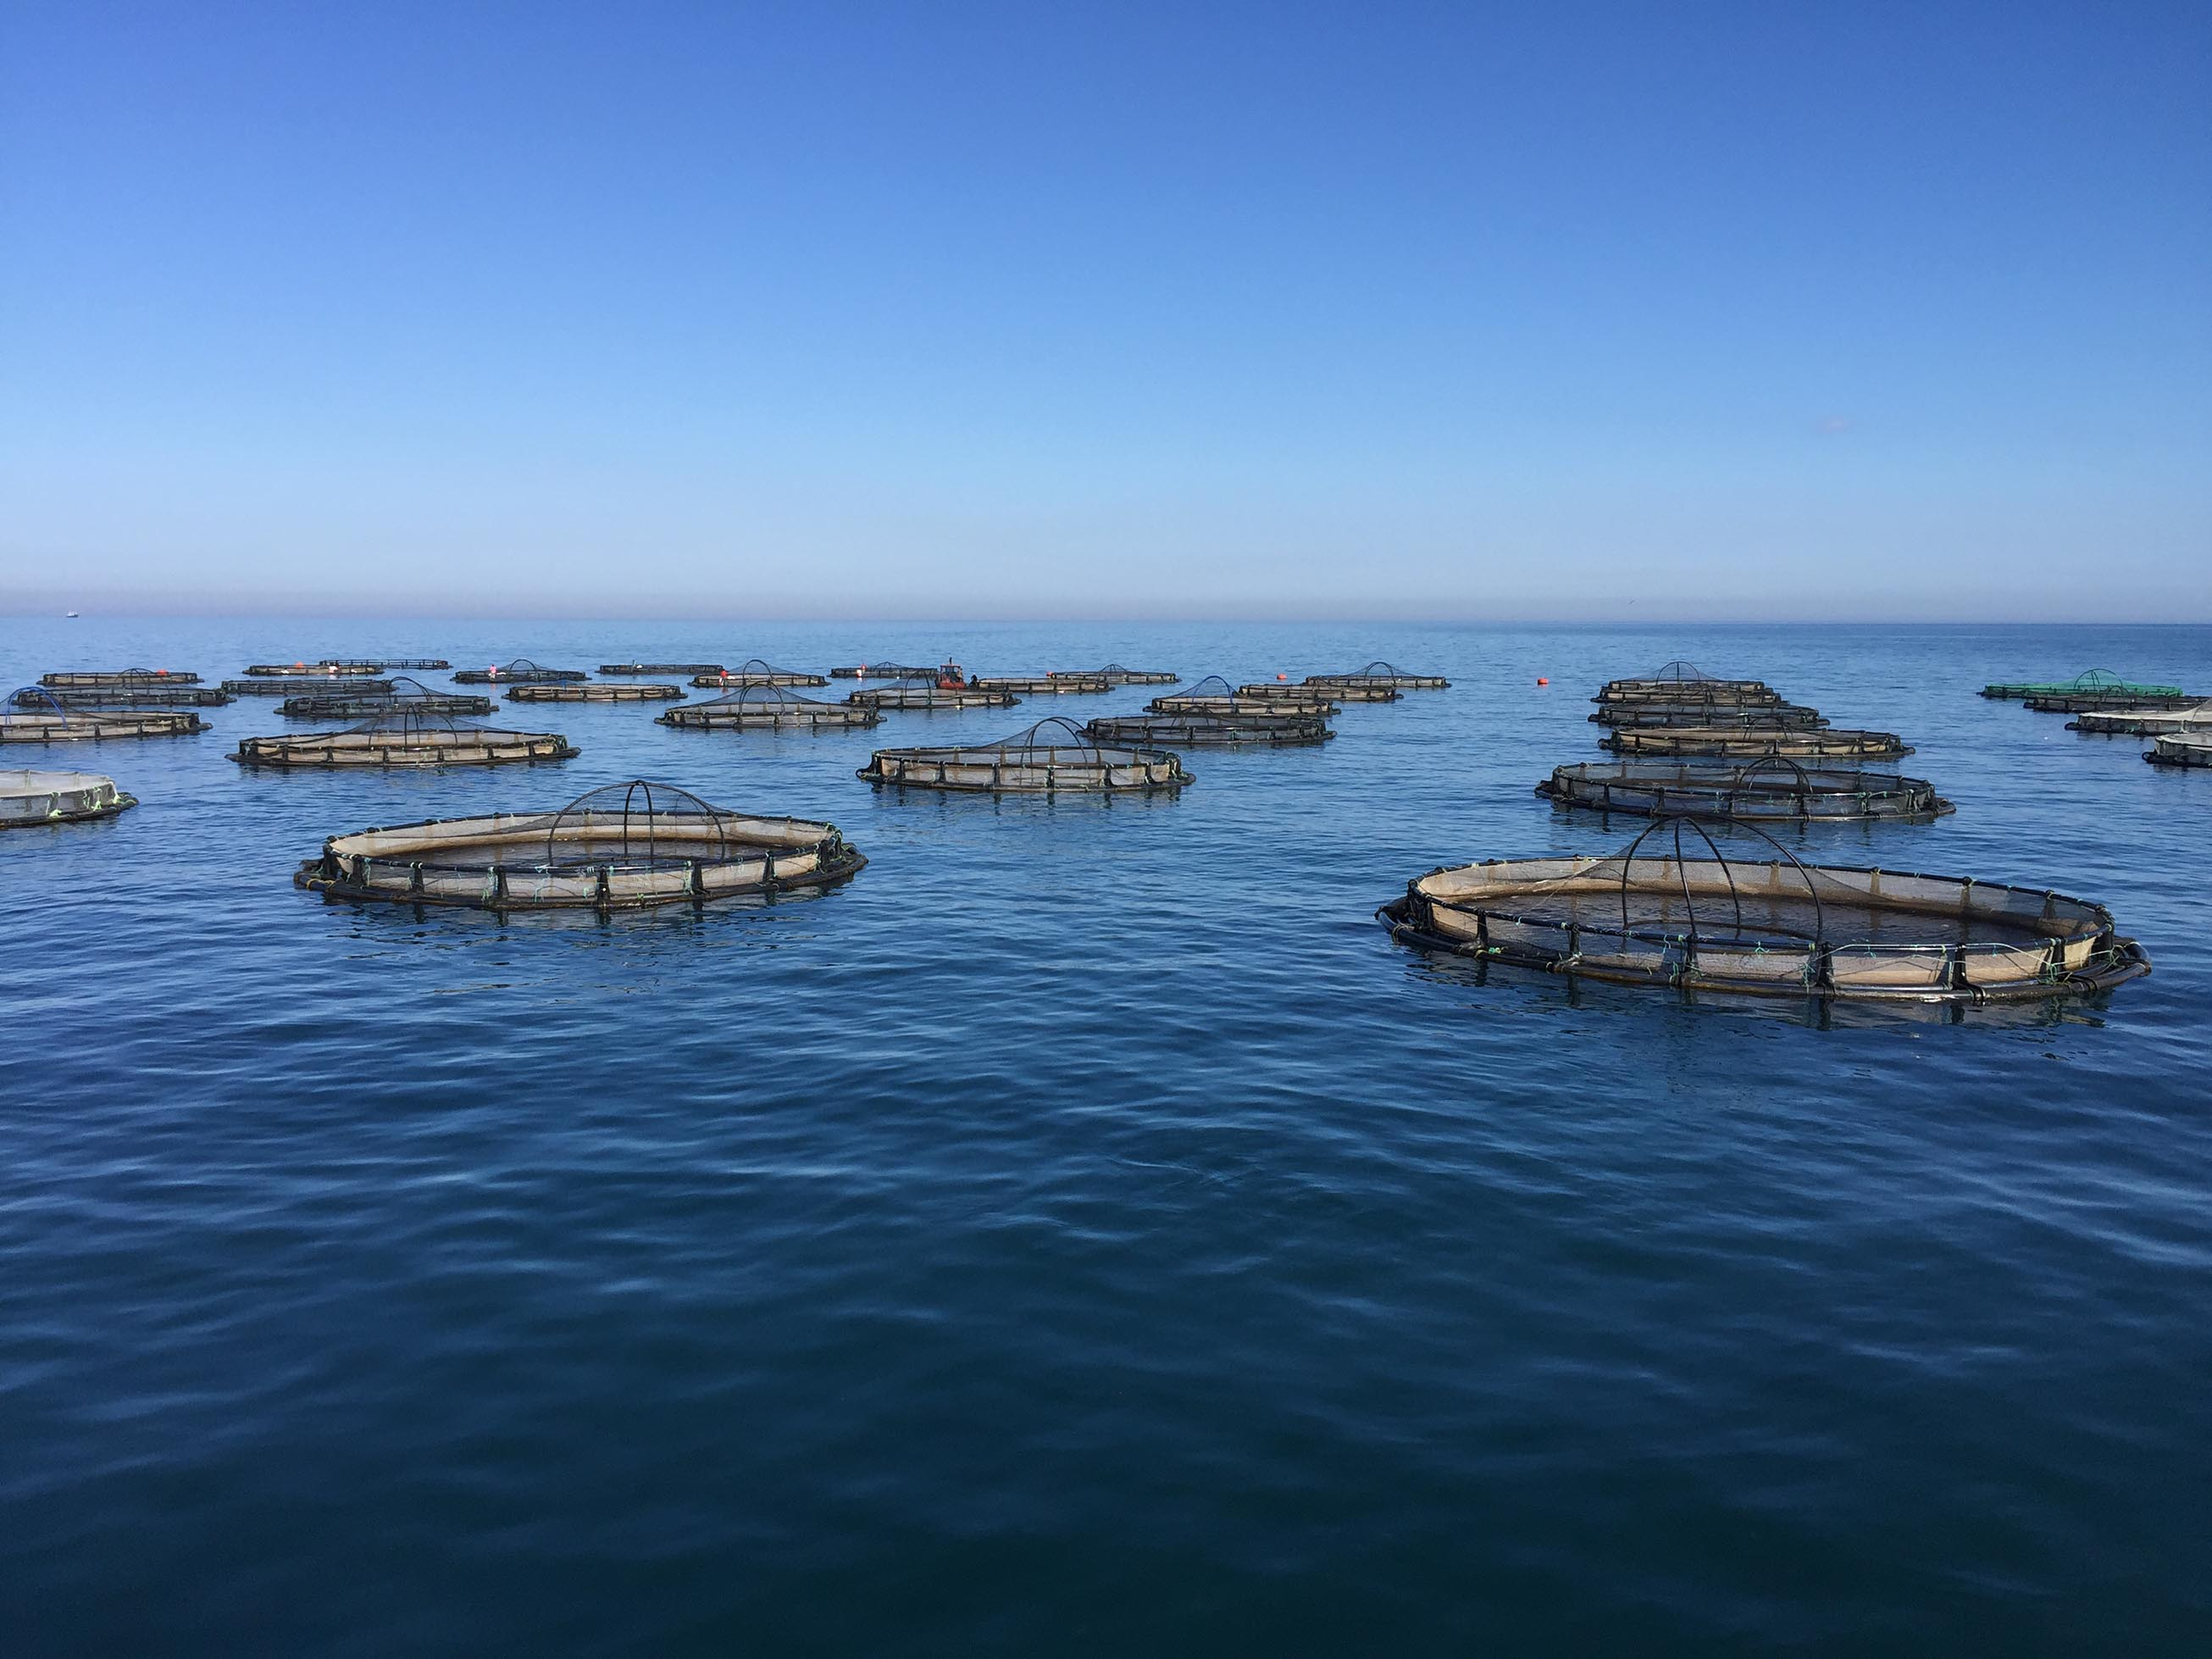 Aquaculture and fish farms must adapt to the changing sea conditions of climate change.